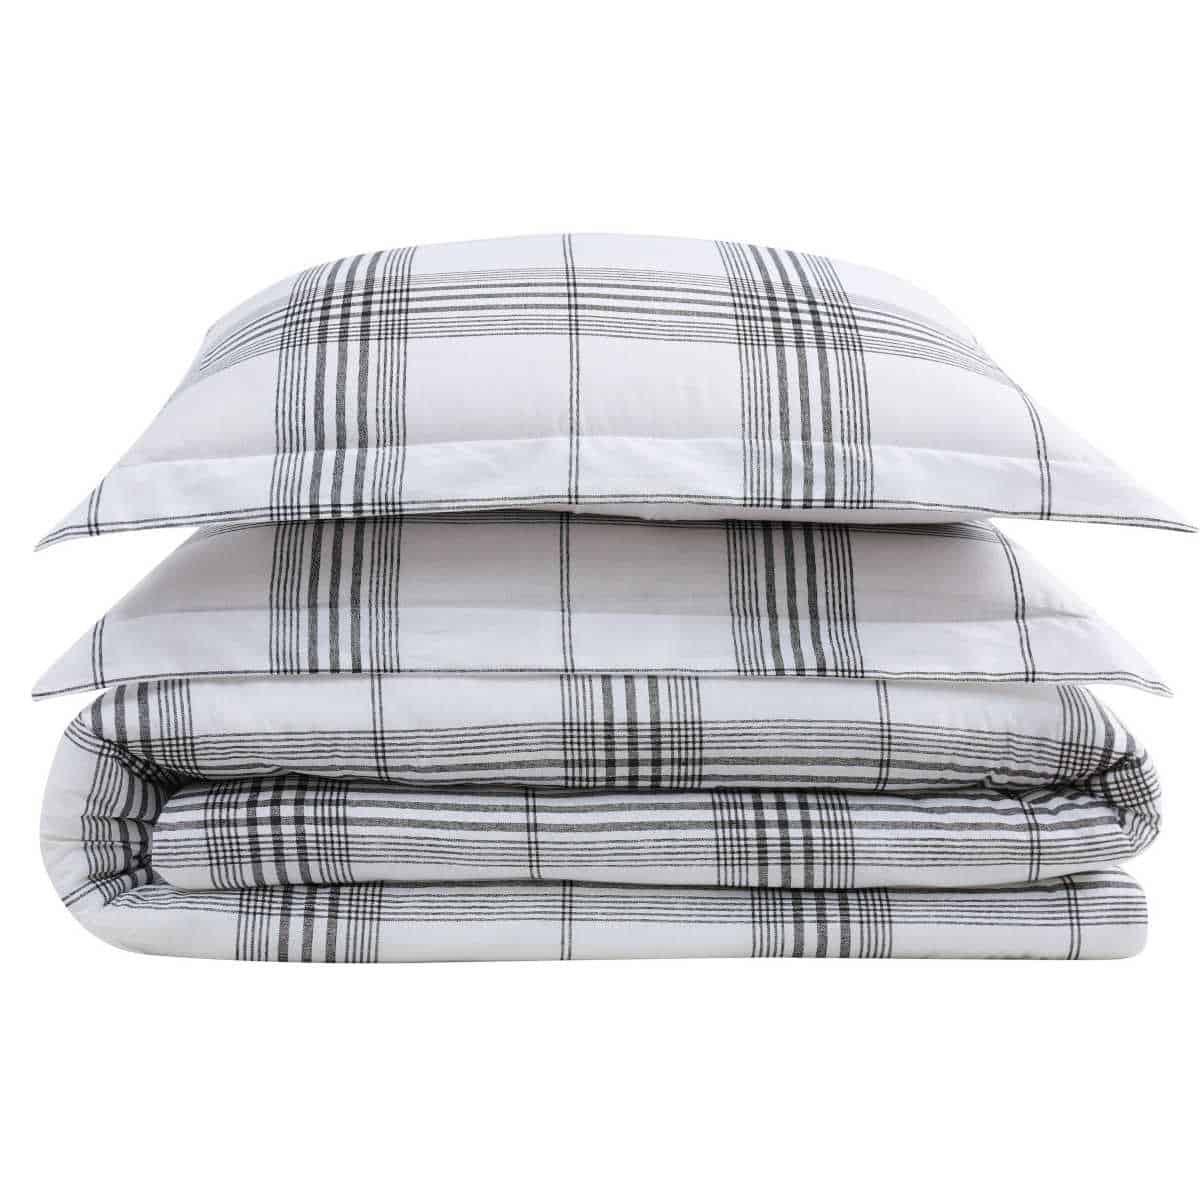 Black and white check bedding for the industrial style bedroom.